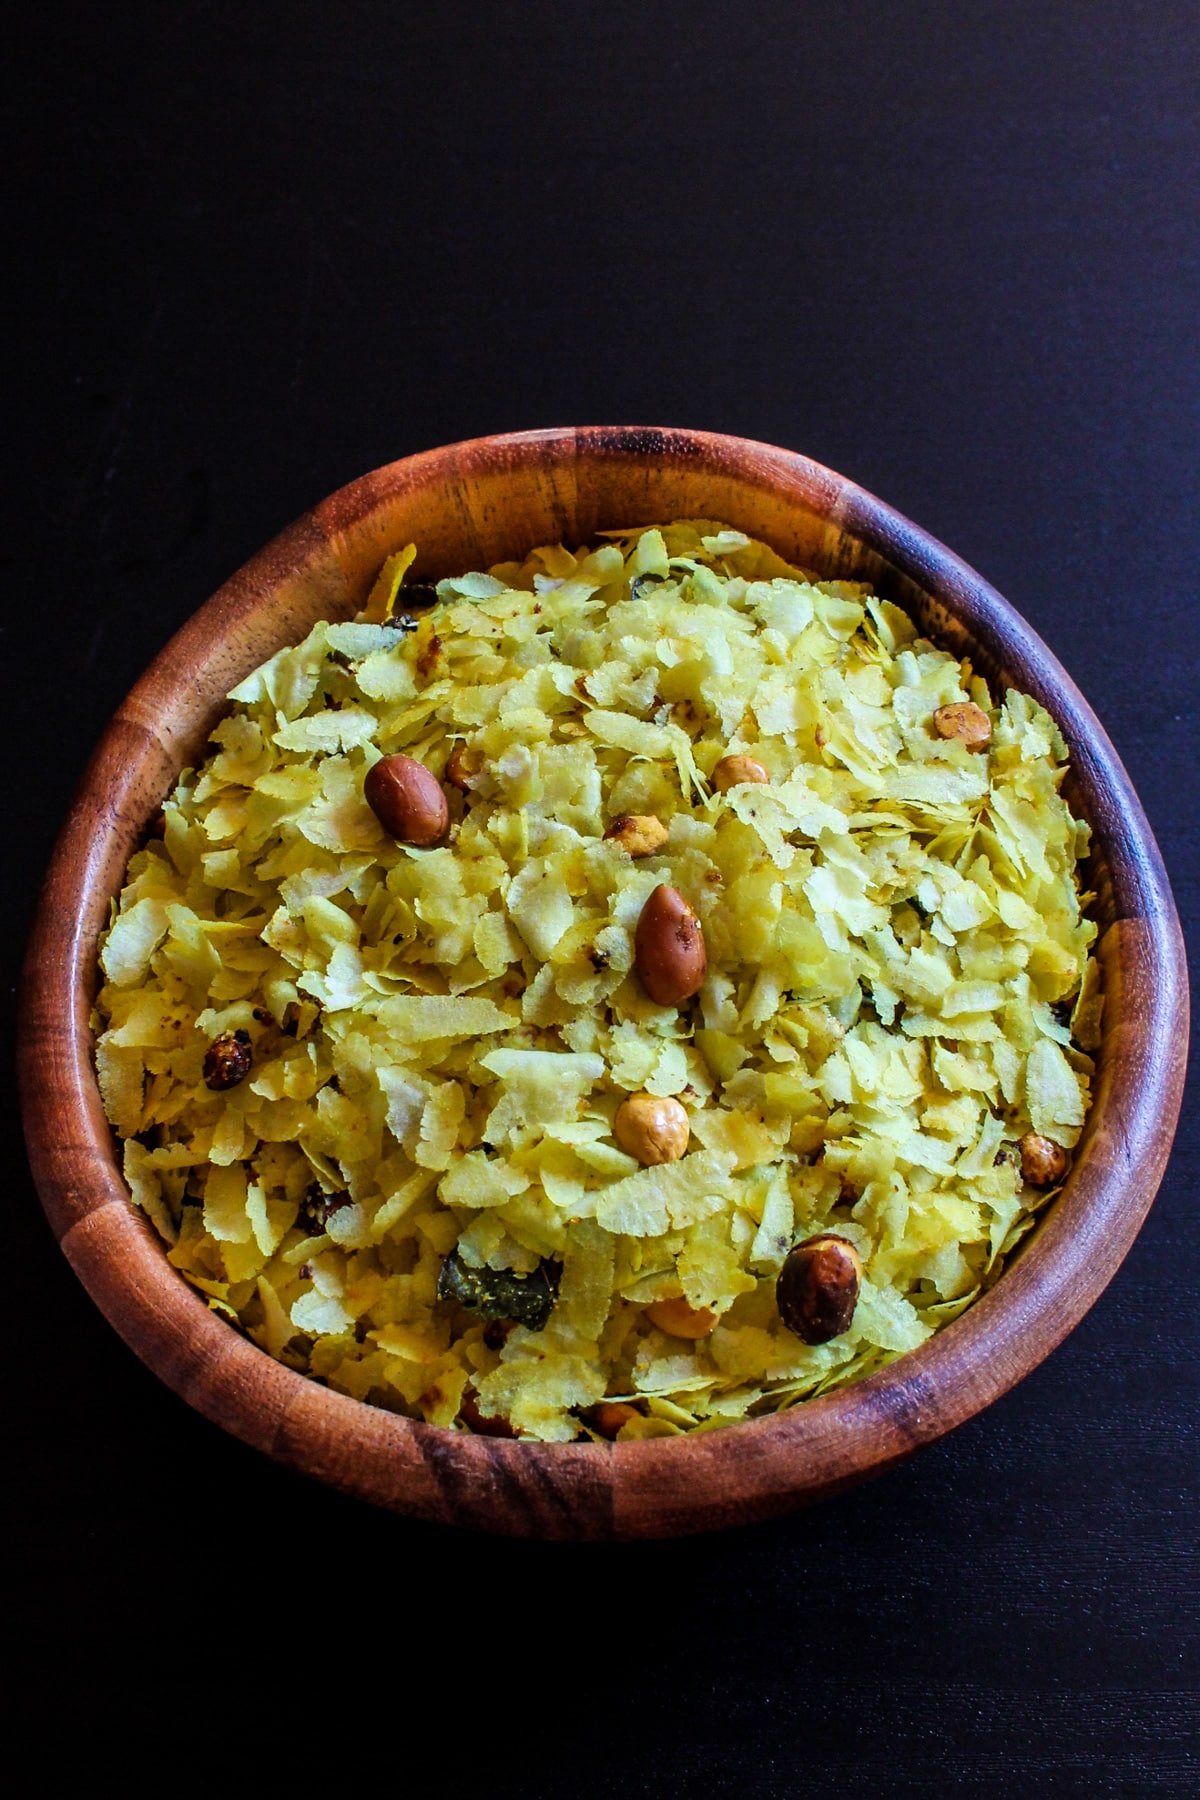 Roasted thin poha chivda in a wooden bowl.